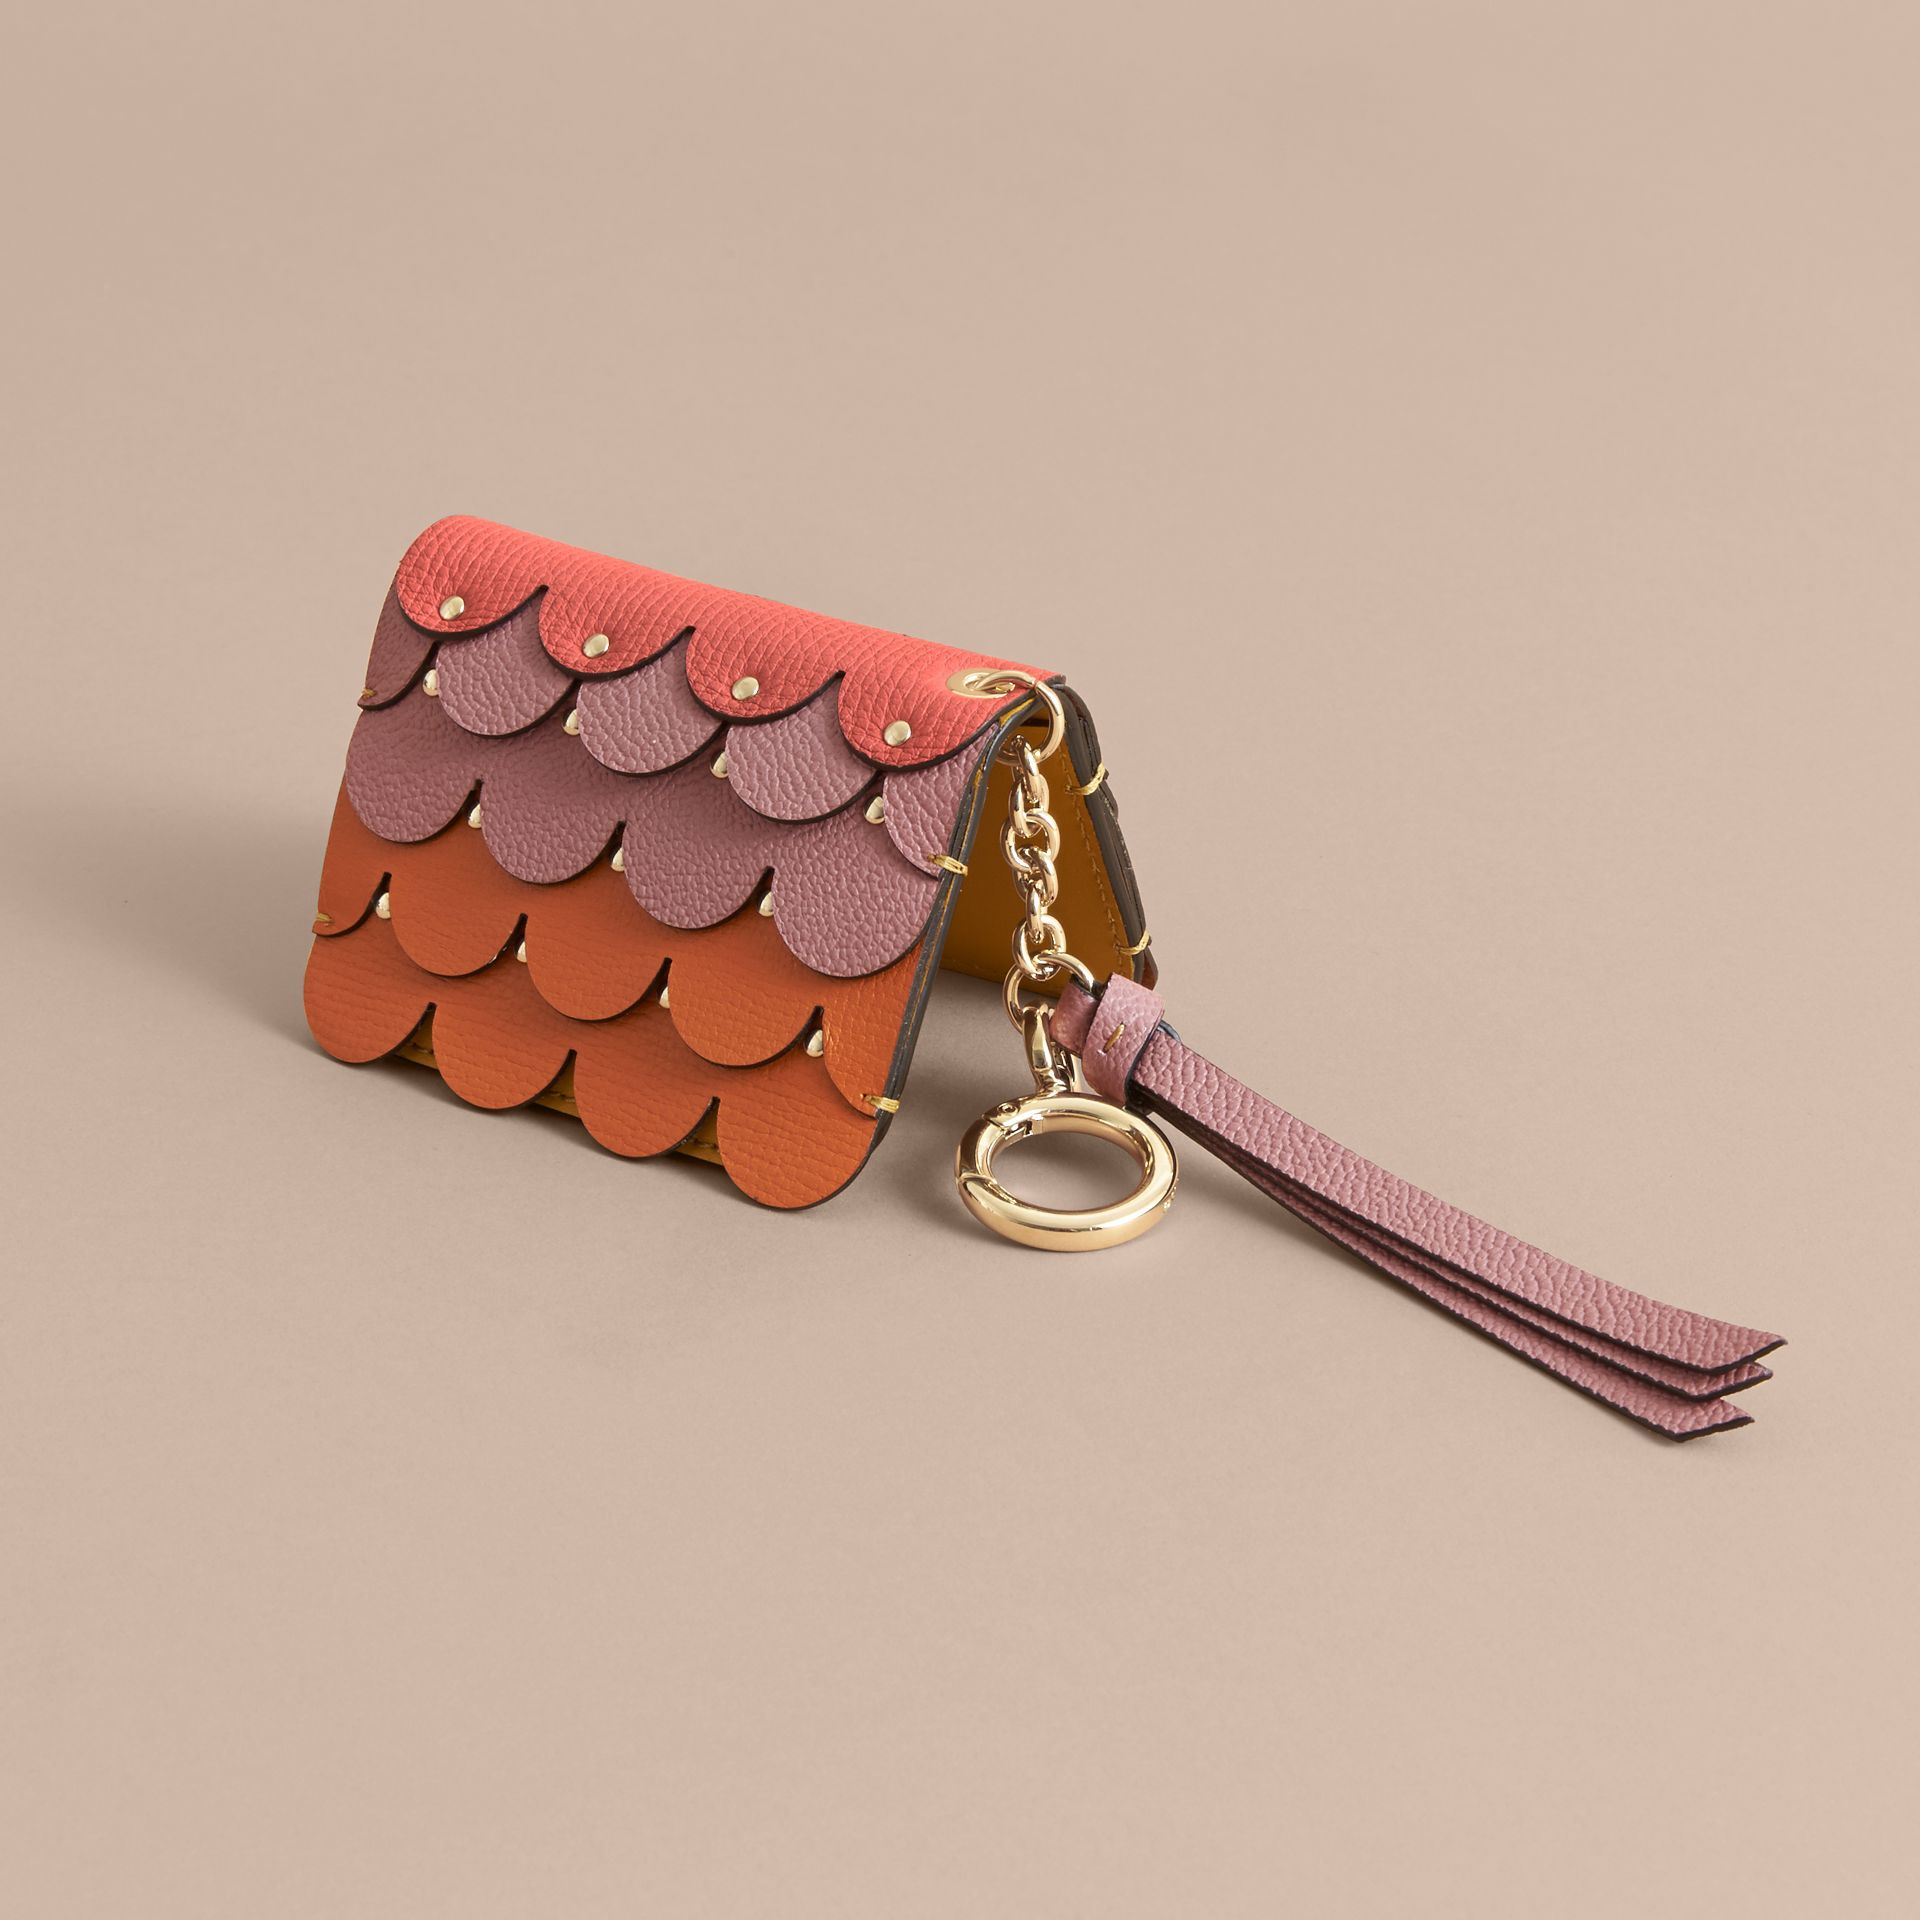 Scalloped Leather Card Case in Bright Straw - Women | Burberry - gallery image 3